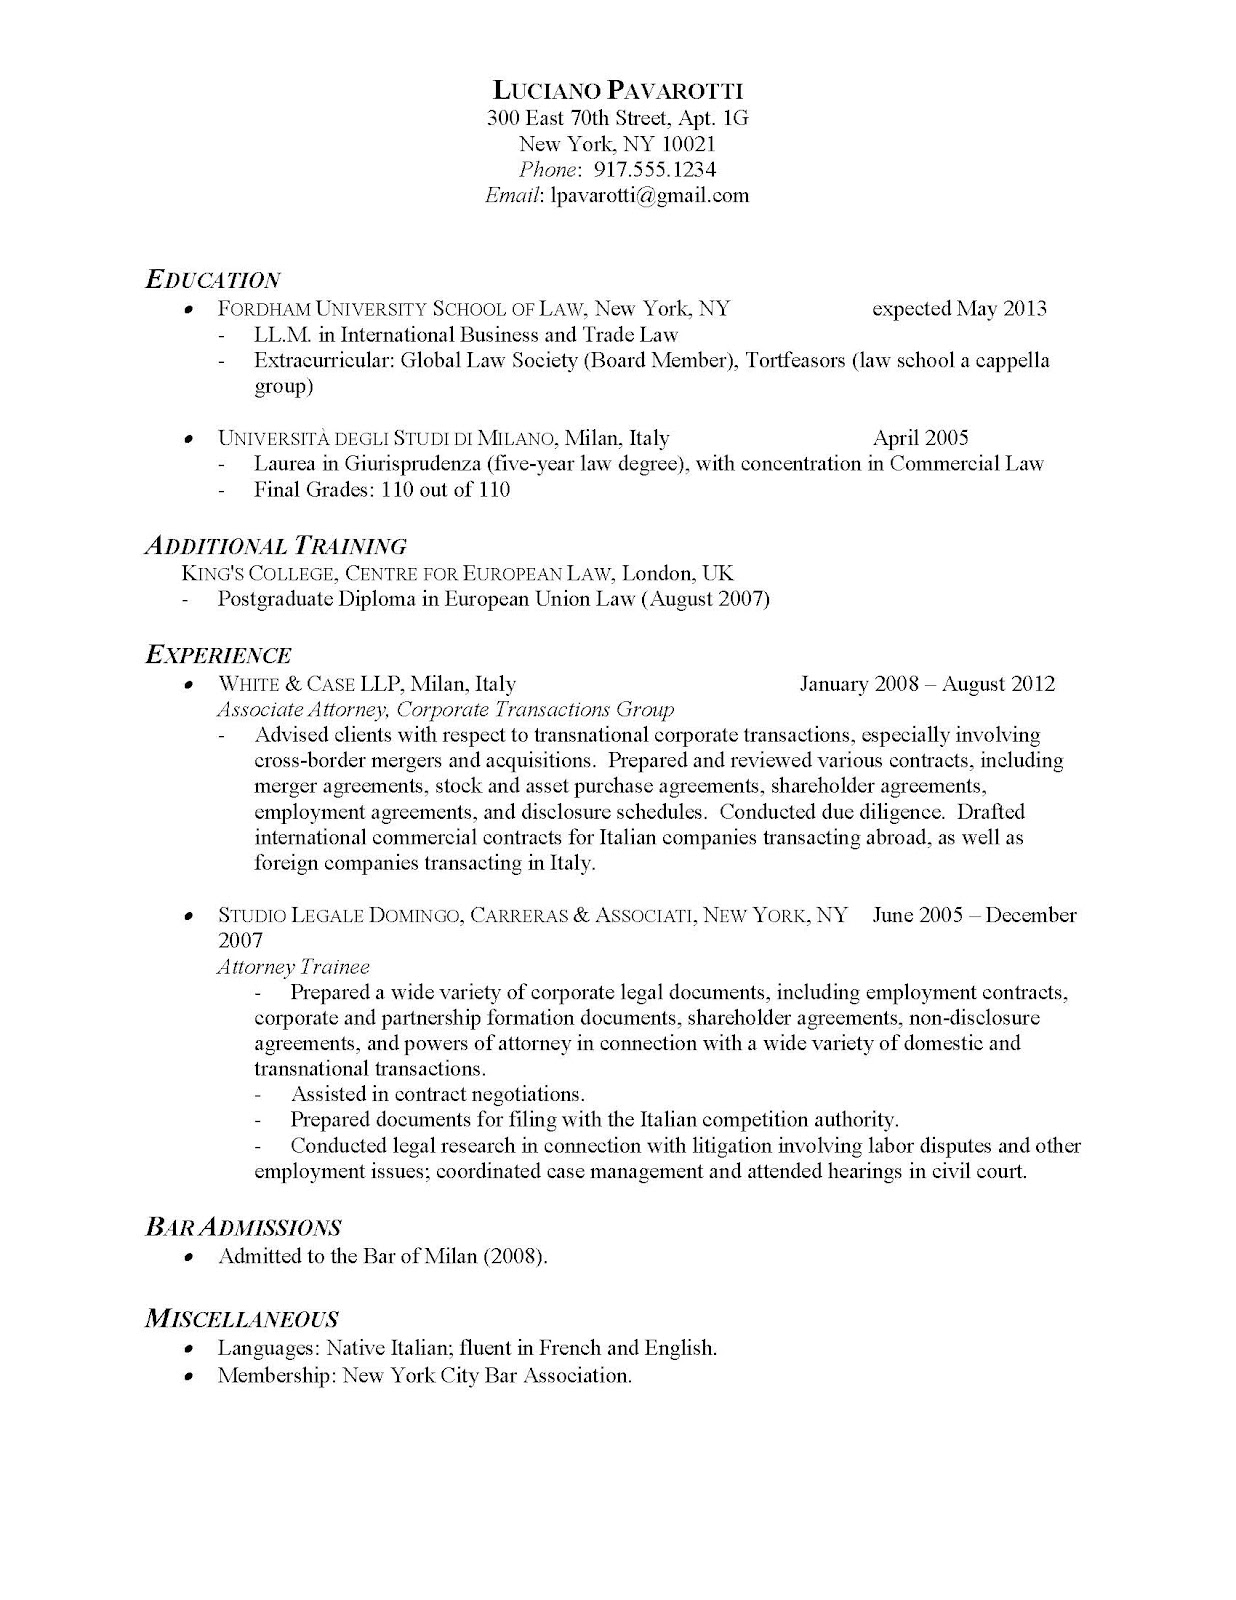 Opposenewapstandardsus  Gorgeous Resume Reviewer Resume Reviewer Medioxco With Licious Resume Reviewer Hiringlibrariansresumedoc  Hiringlibrariansresumedoc   With Astounding Social Work Resume Template Also Grad School Resume Template In Addition Key Qualifications For Resume And Free Word Resume Template As Well As Example Of Job Resume Additionally Process Engineer Resume From Medioxco With Opposenewapstandardsus  Licious Resume Reviewer Resume Reviewer Medioxco With Astounding Resume Reviewer Hiringlibrariansresumedoc  Hiringlibrariansresumedoc   And Gorgeous Social Work Resume Template Also Grad School Resume Template In Addition Key Qualifications For Resume From Medioxco